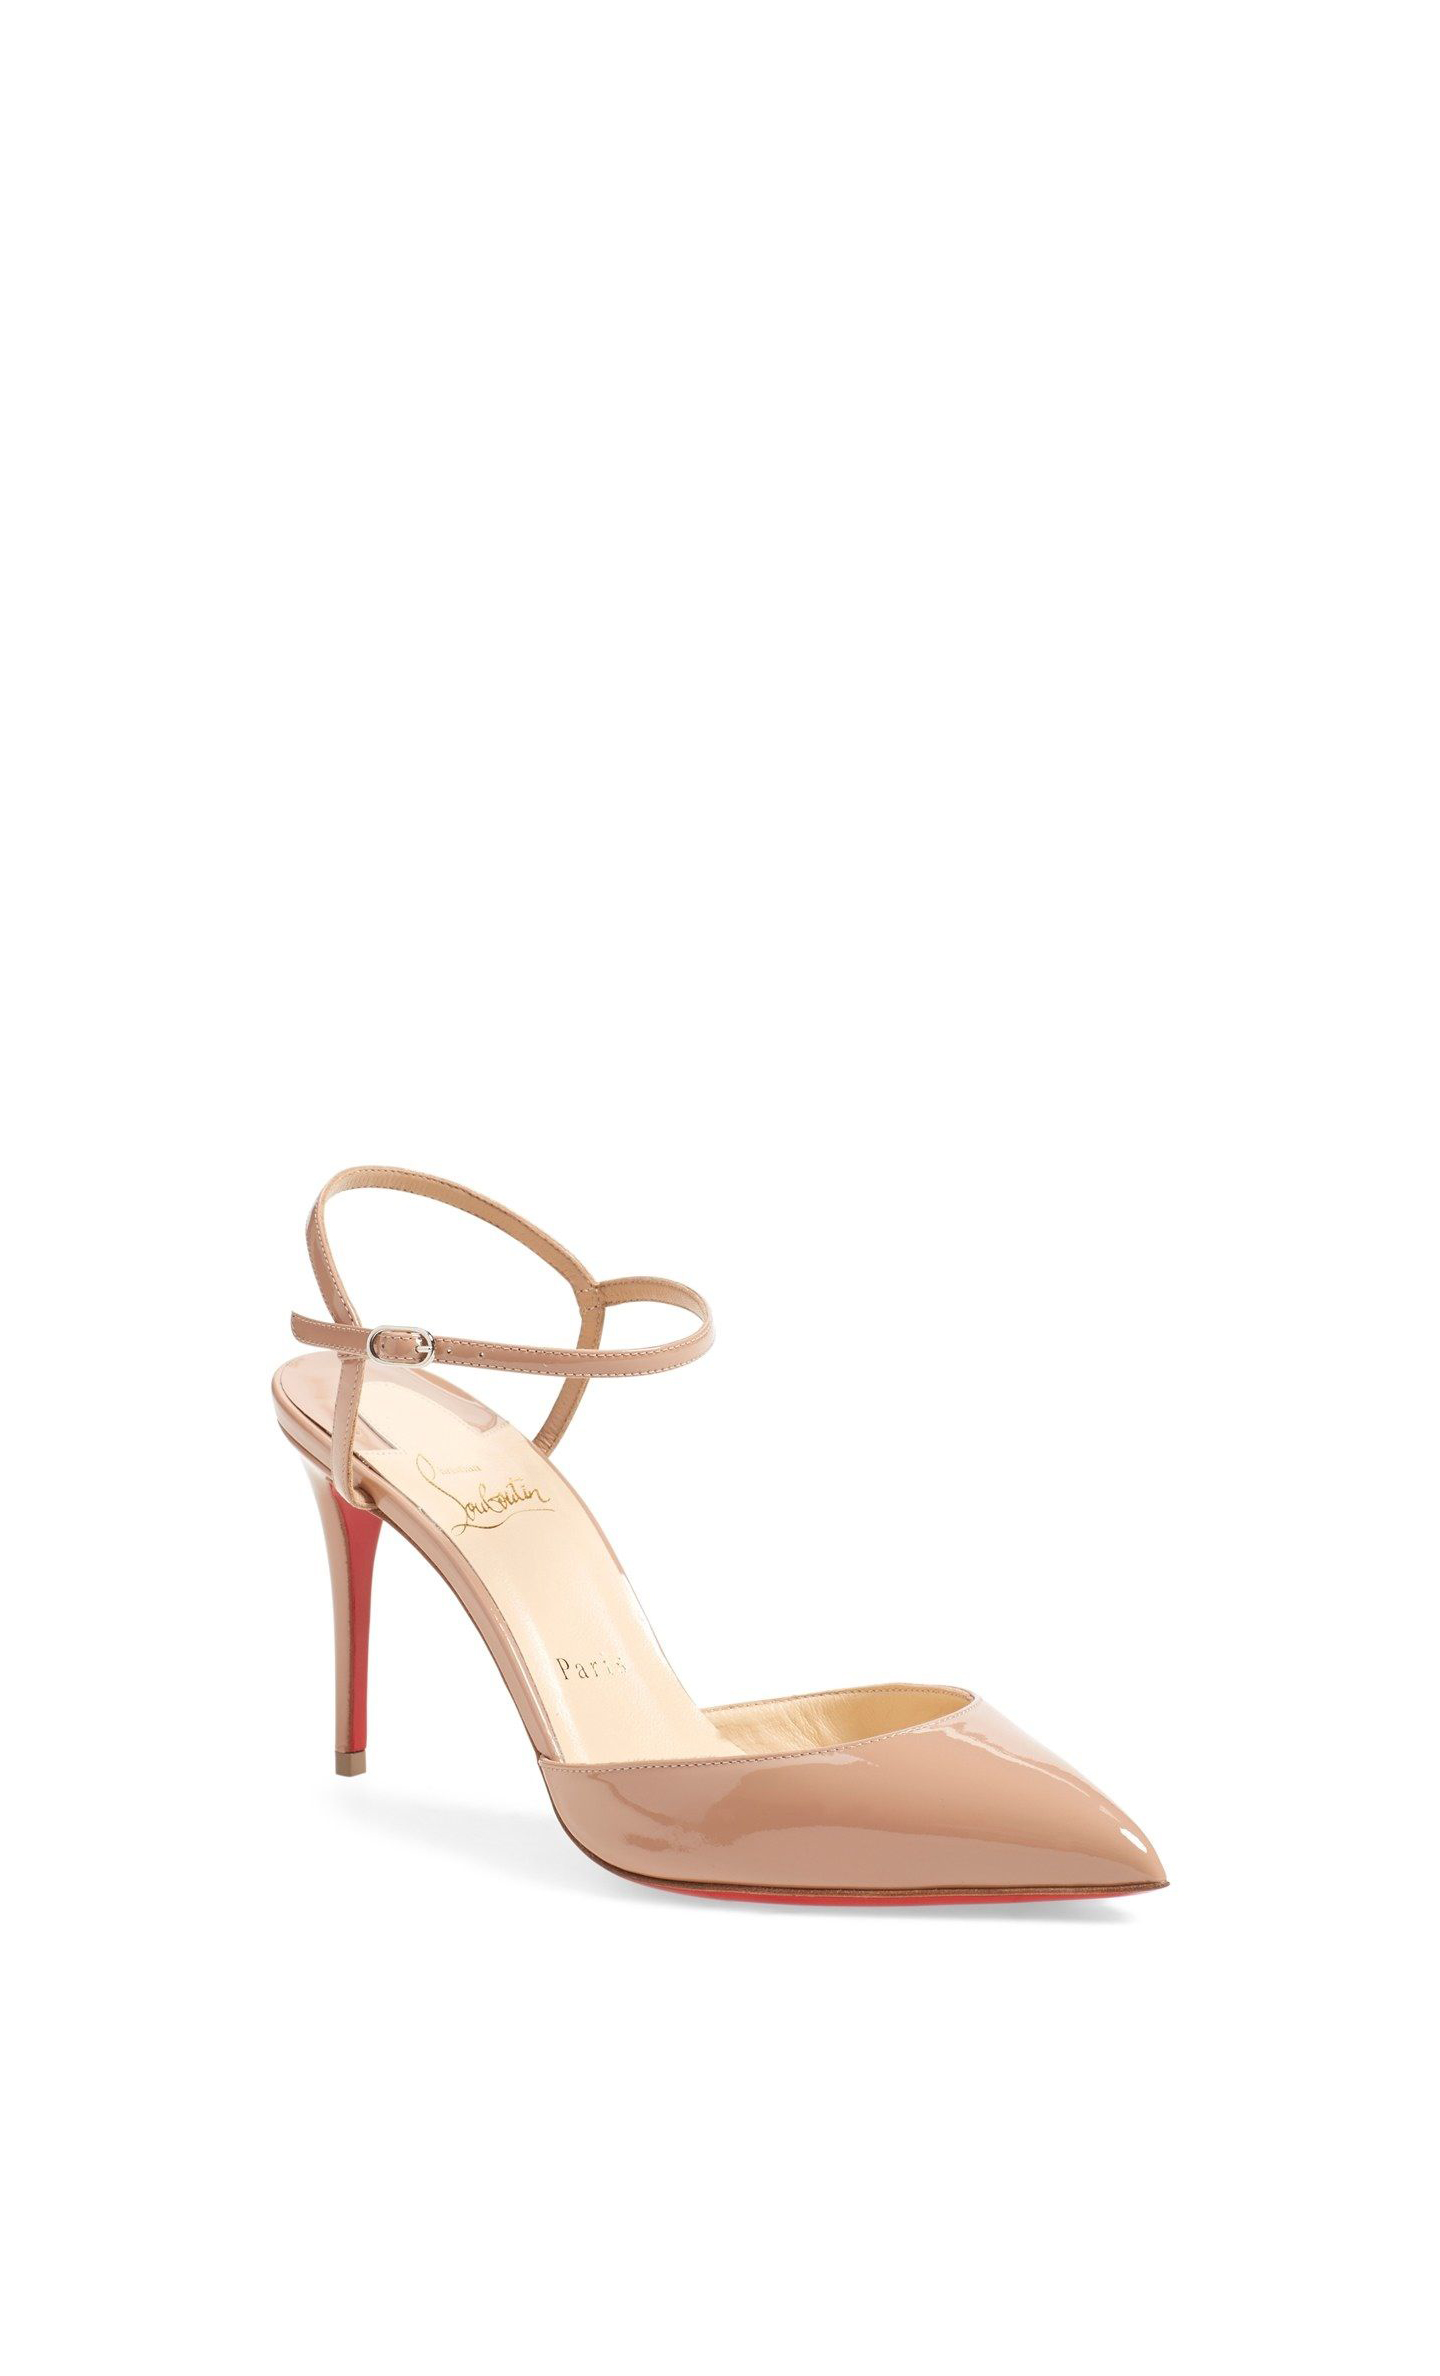 nude shoe ankle strap pump pink